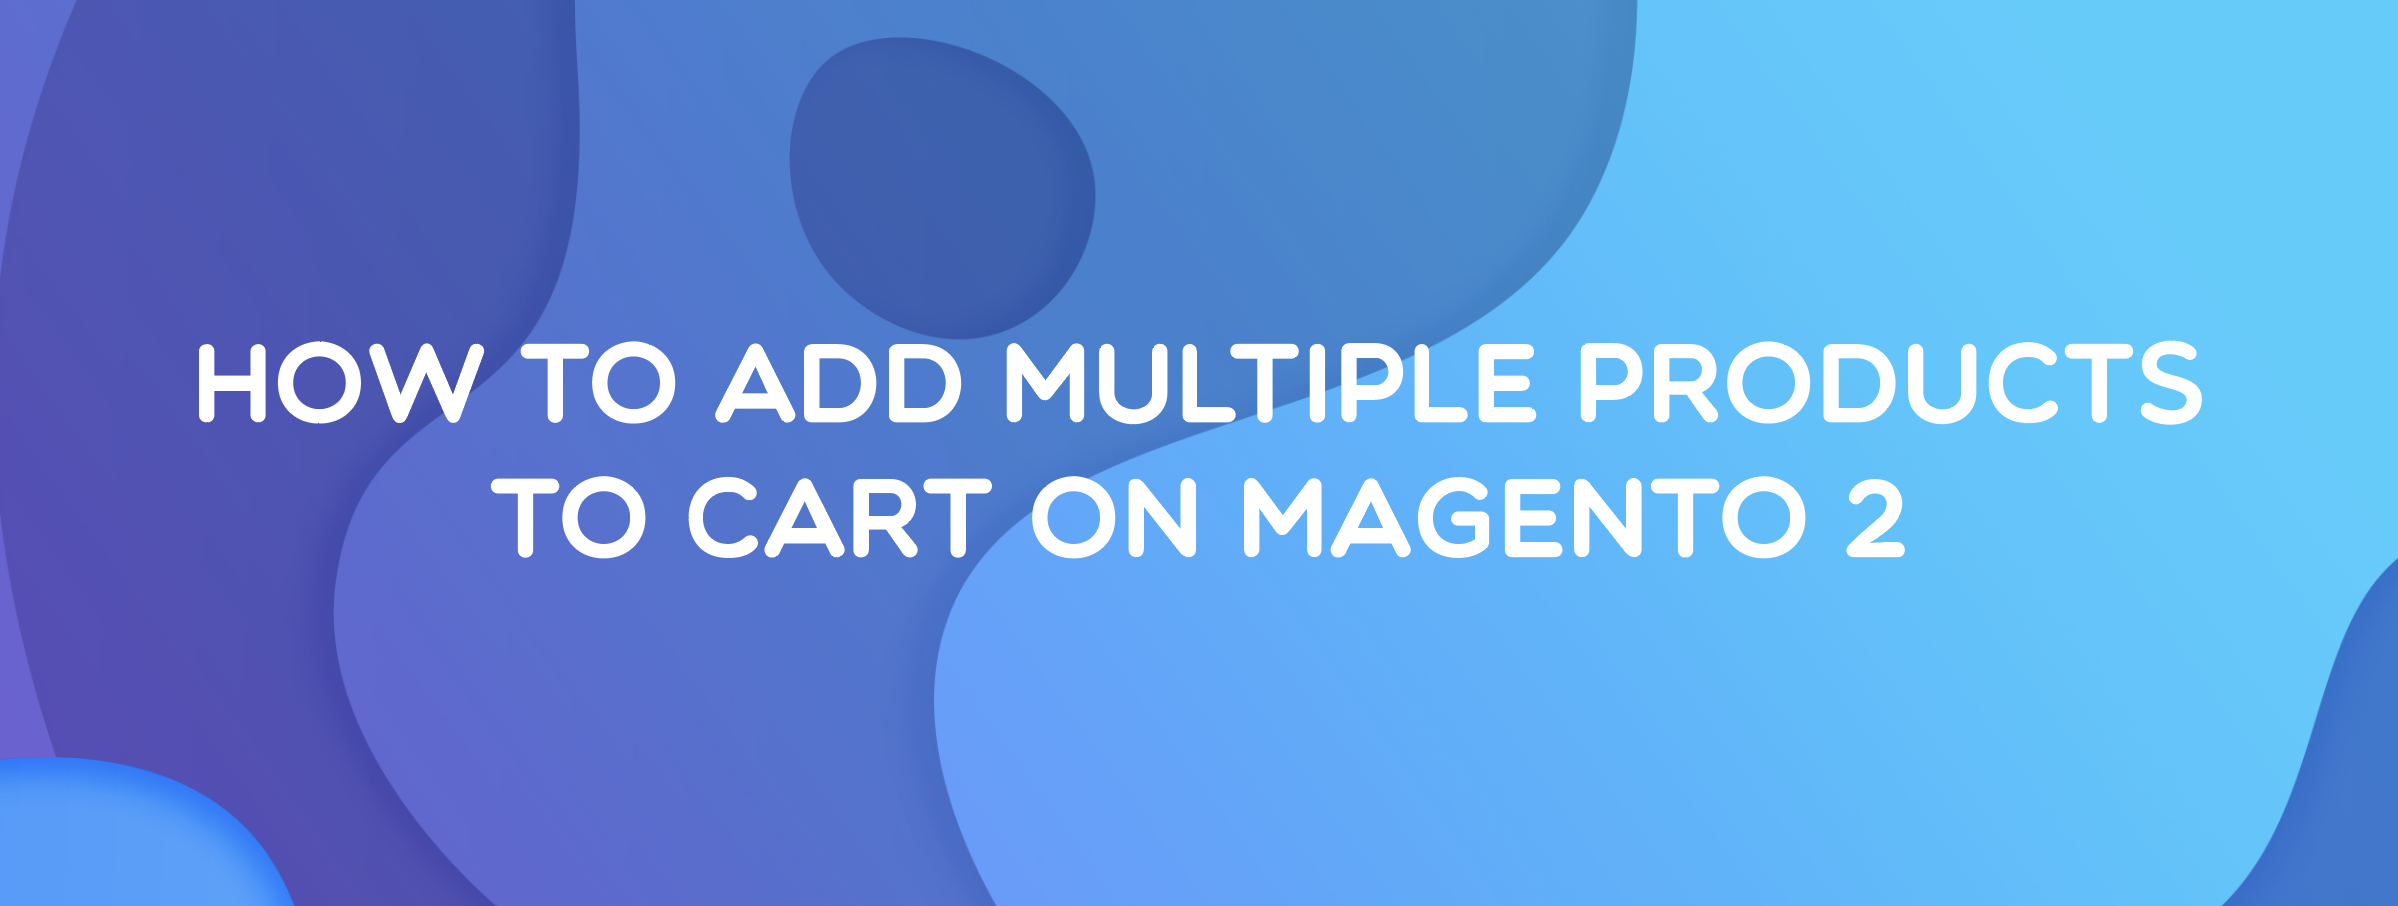 How to Add Multiple Products to Cart on Magento 2